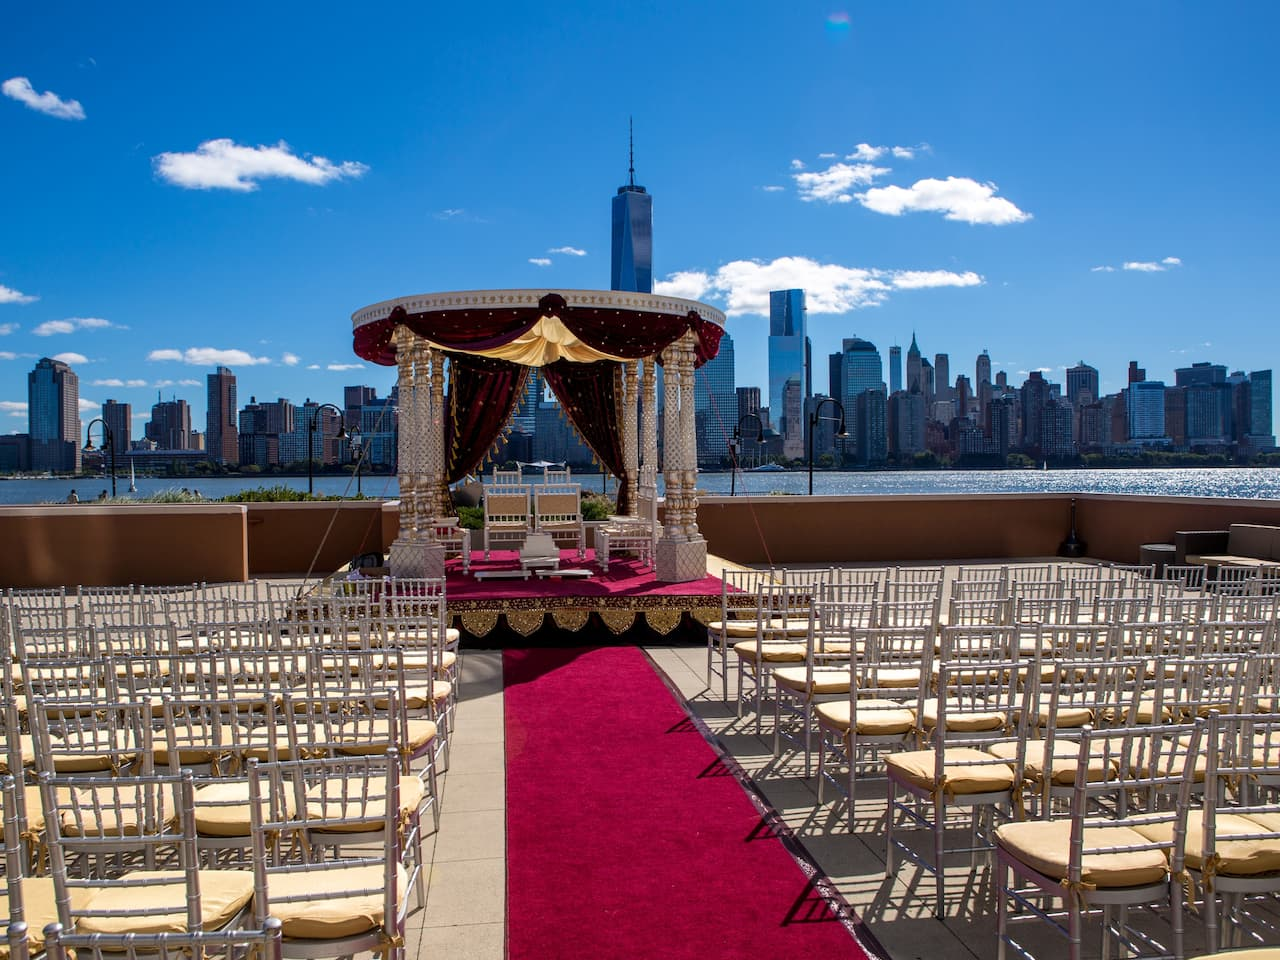 Outdoor wedding venue with the New York City skyline in the background